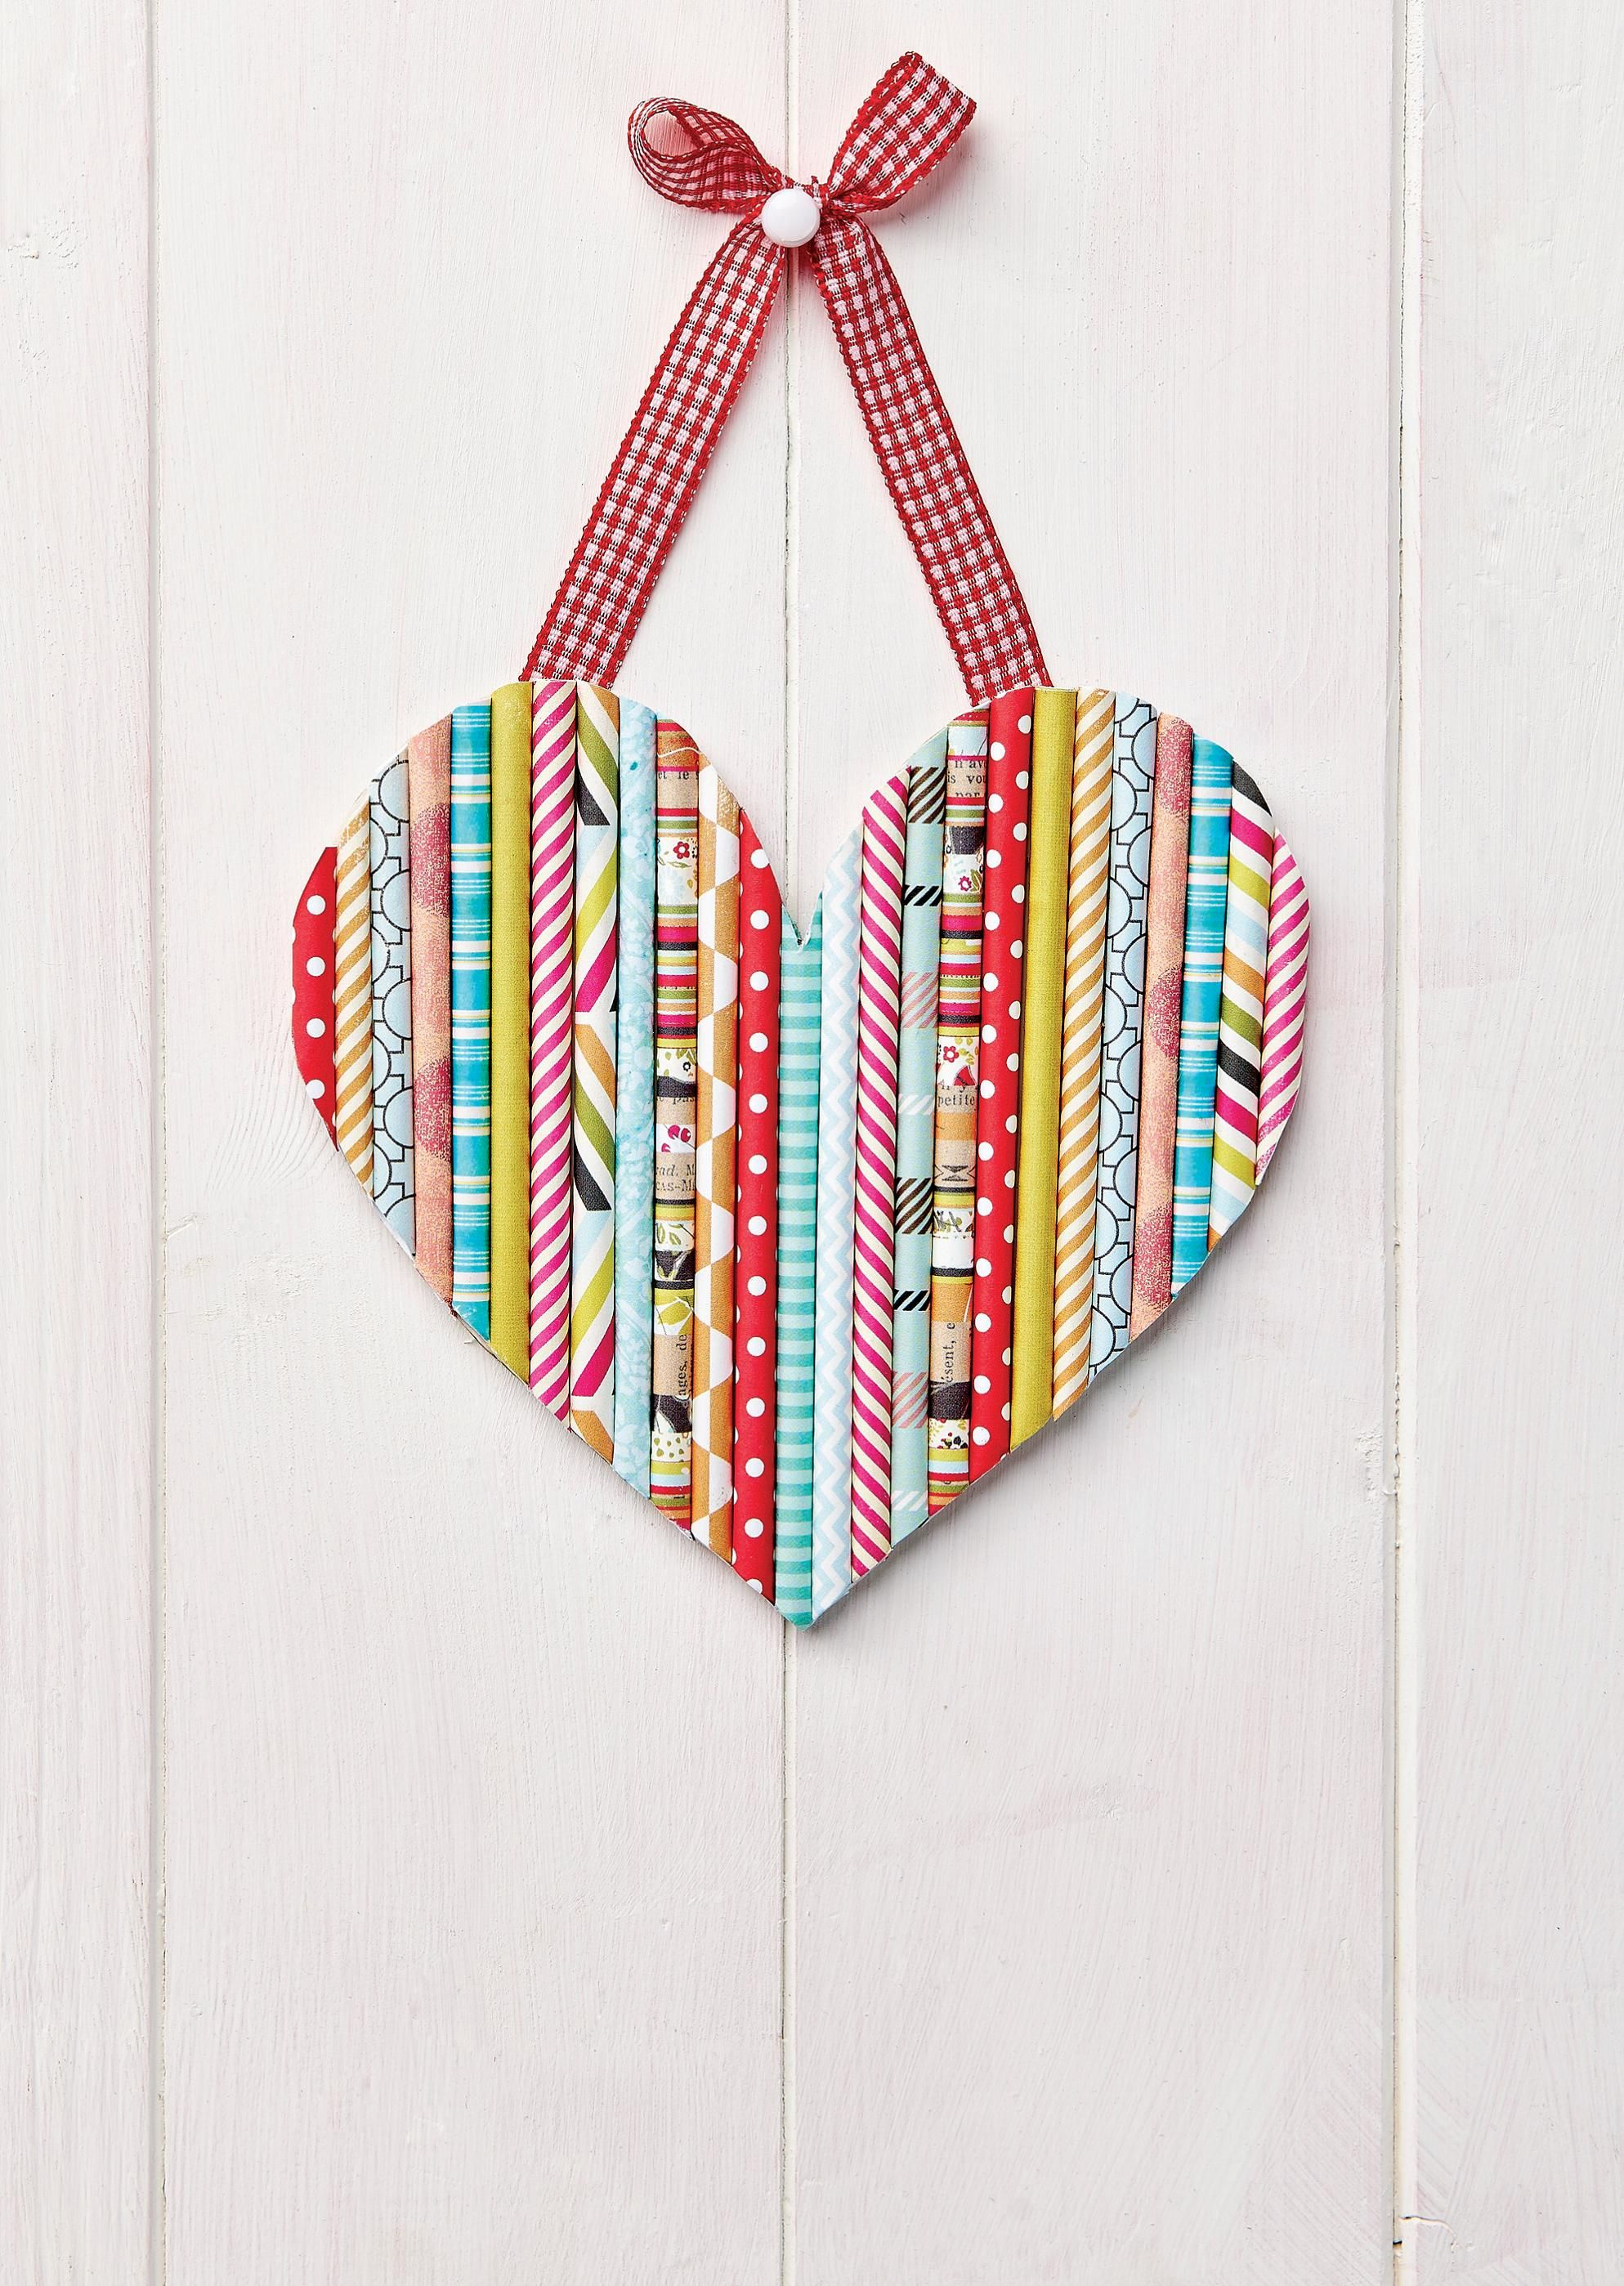 Simple yet cute paper craft pretty paper rolled into straw shapes a collection of 25 paper heart projects for valentines day weddings or just because a handmade heart is a simple diy craft tutorial idea jeuxipadfo Gallery